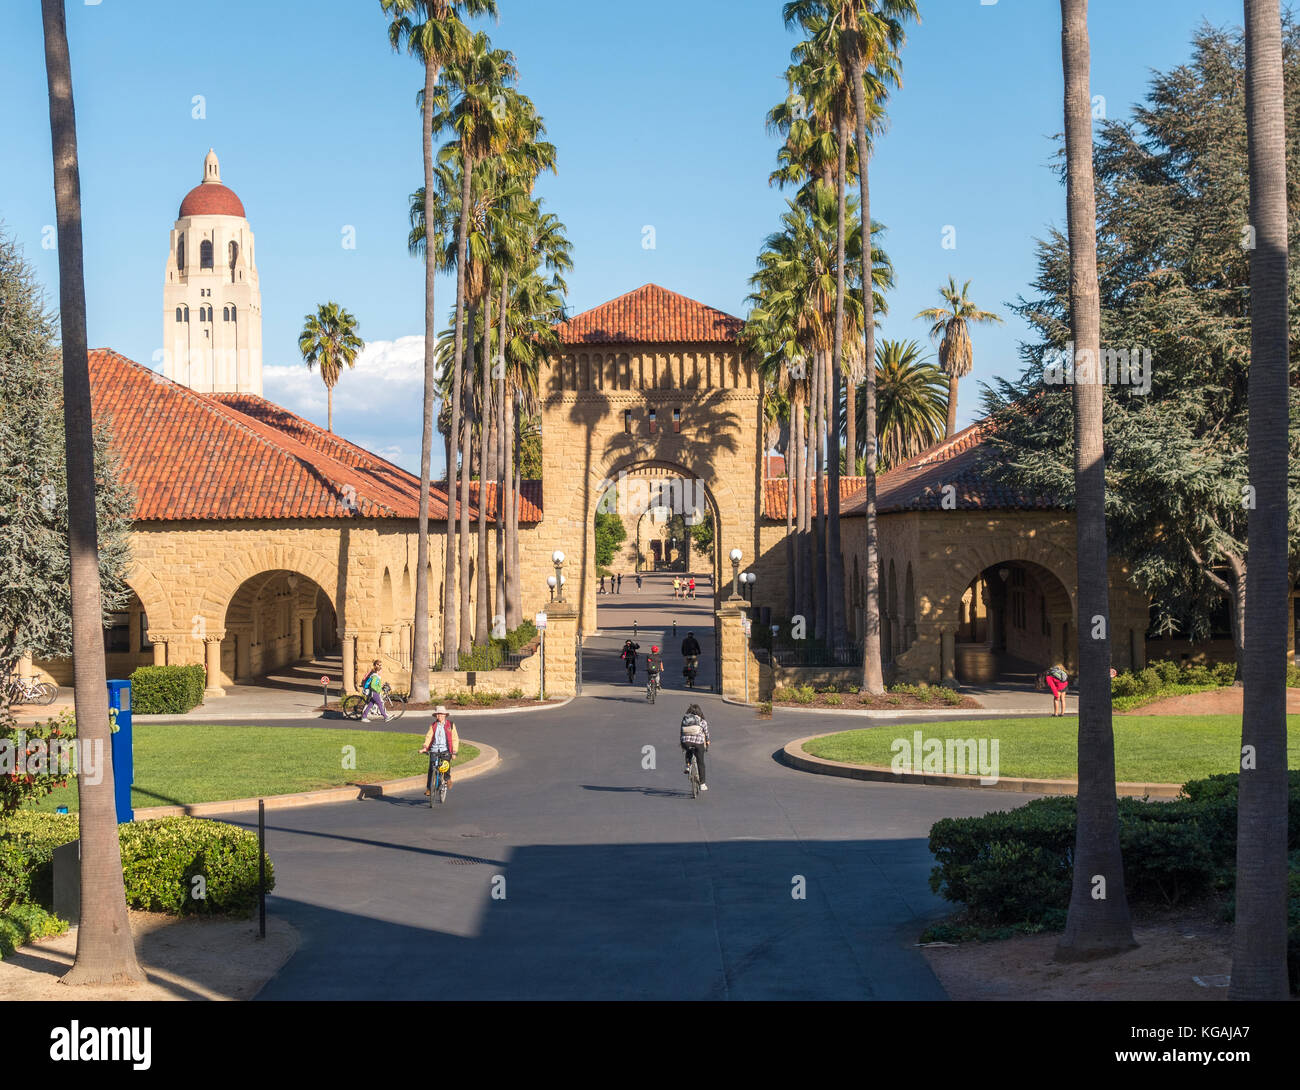 stanford-university-gates-to-the-main-quad-on-the-east-west-axis-lomita-KGAJA7.jpg